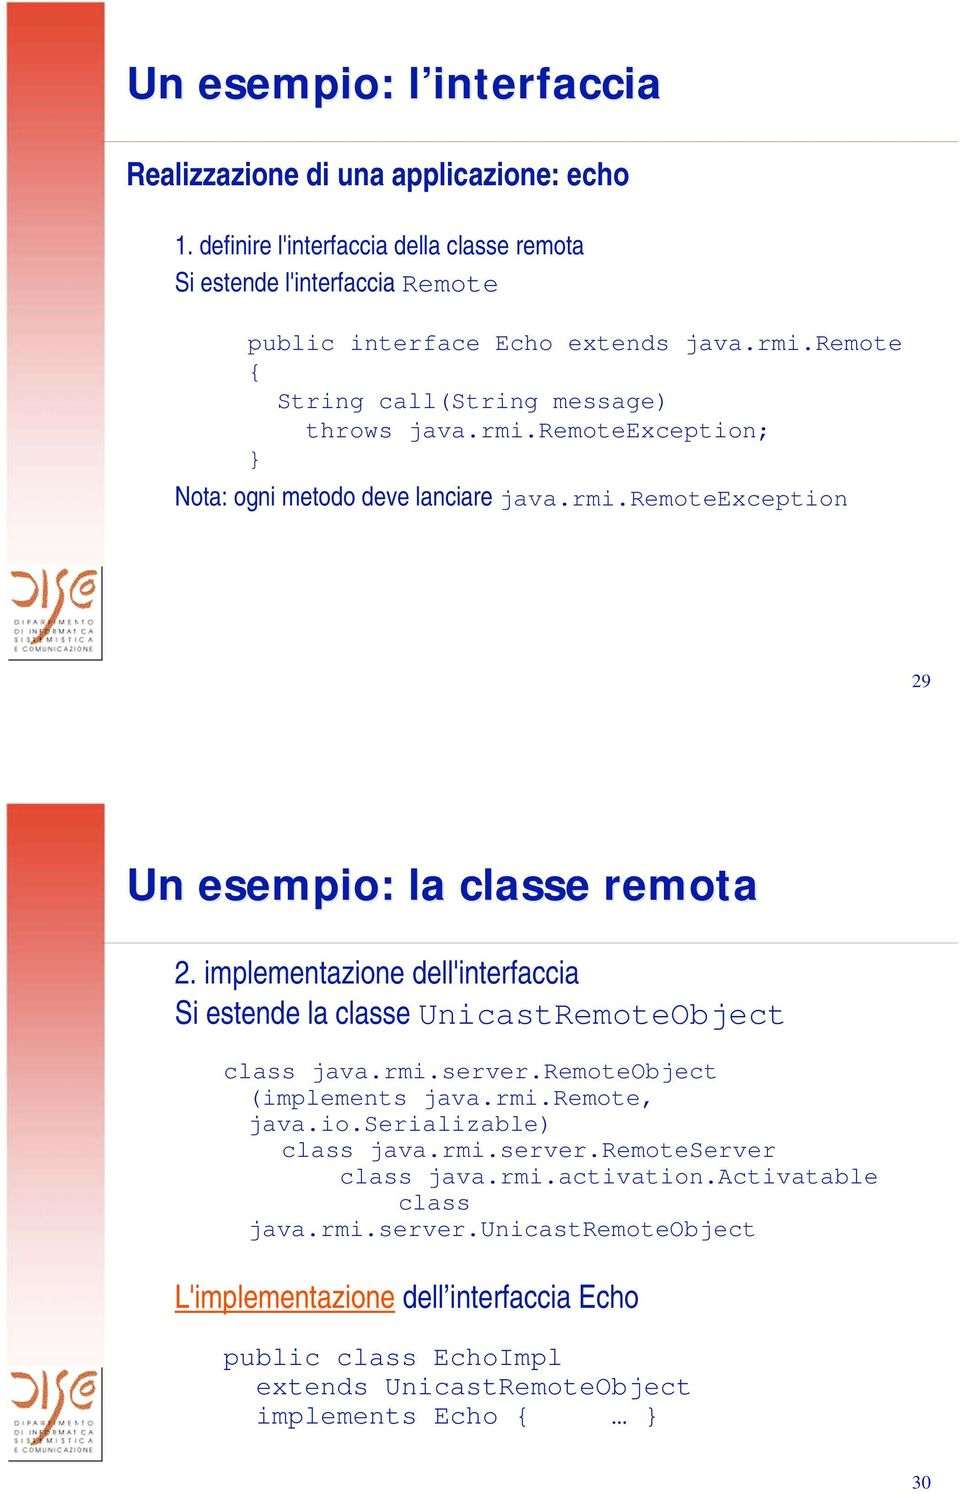 implementazione dell'interfaccia Si estende la classe UnicastRemoteObject class java.rmi.server.remoteobject (implements java.rmi.remote, java.io.serializable) class java.rmi.server.remoteserver class java.